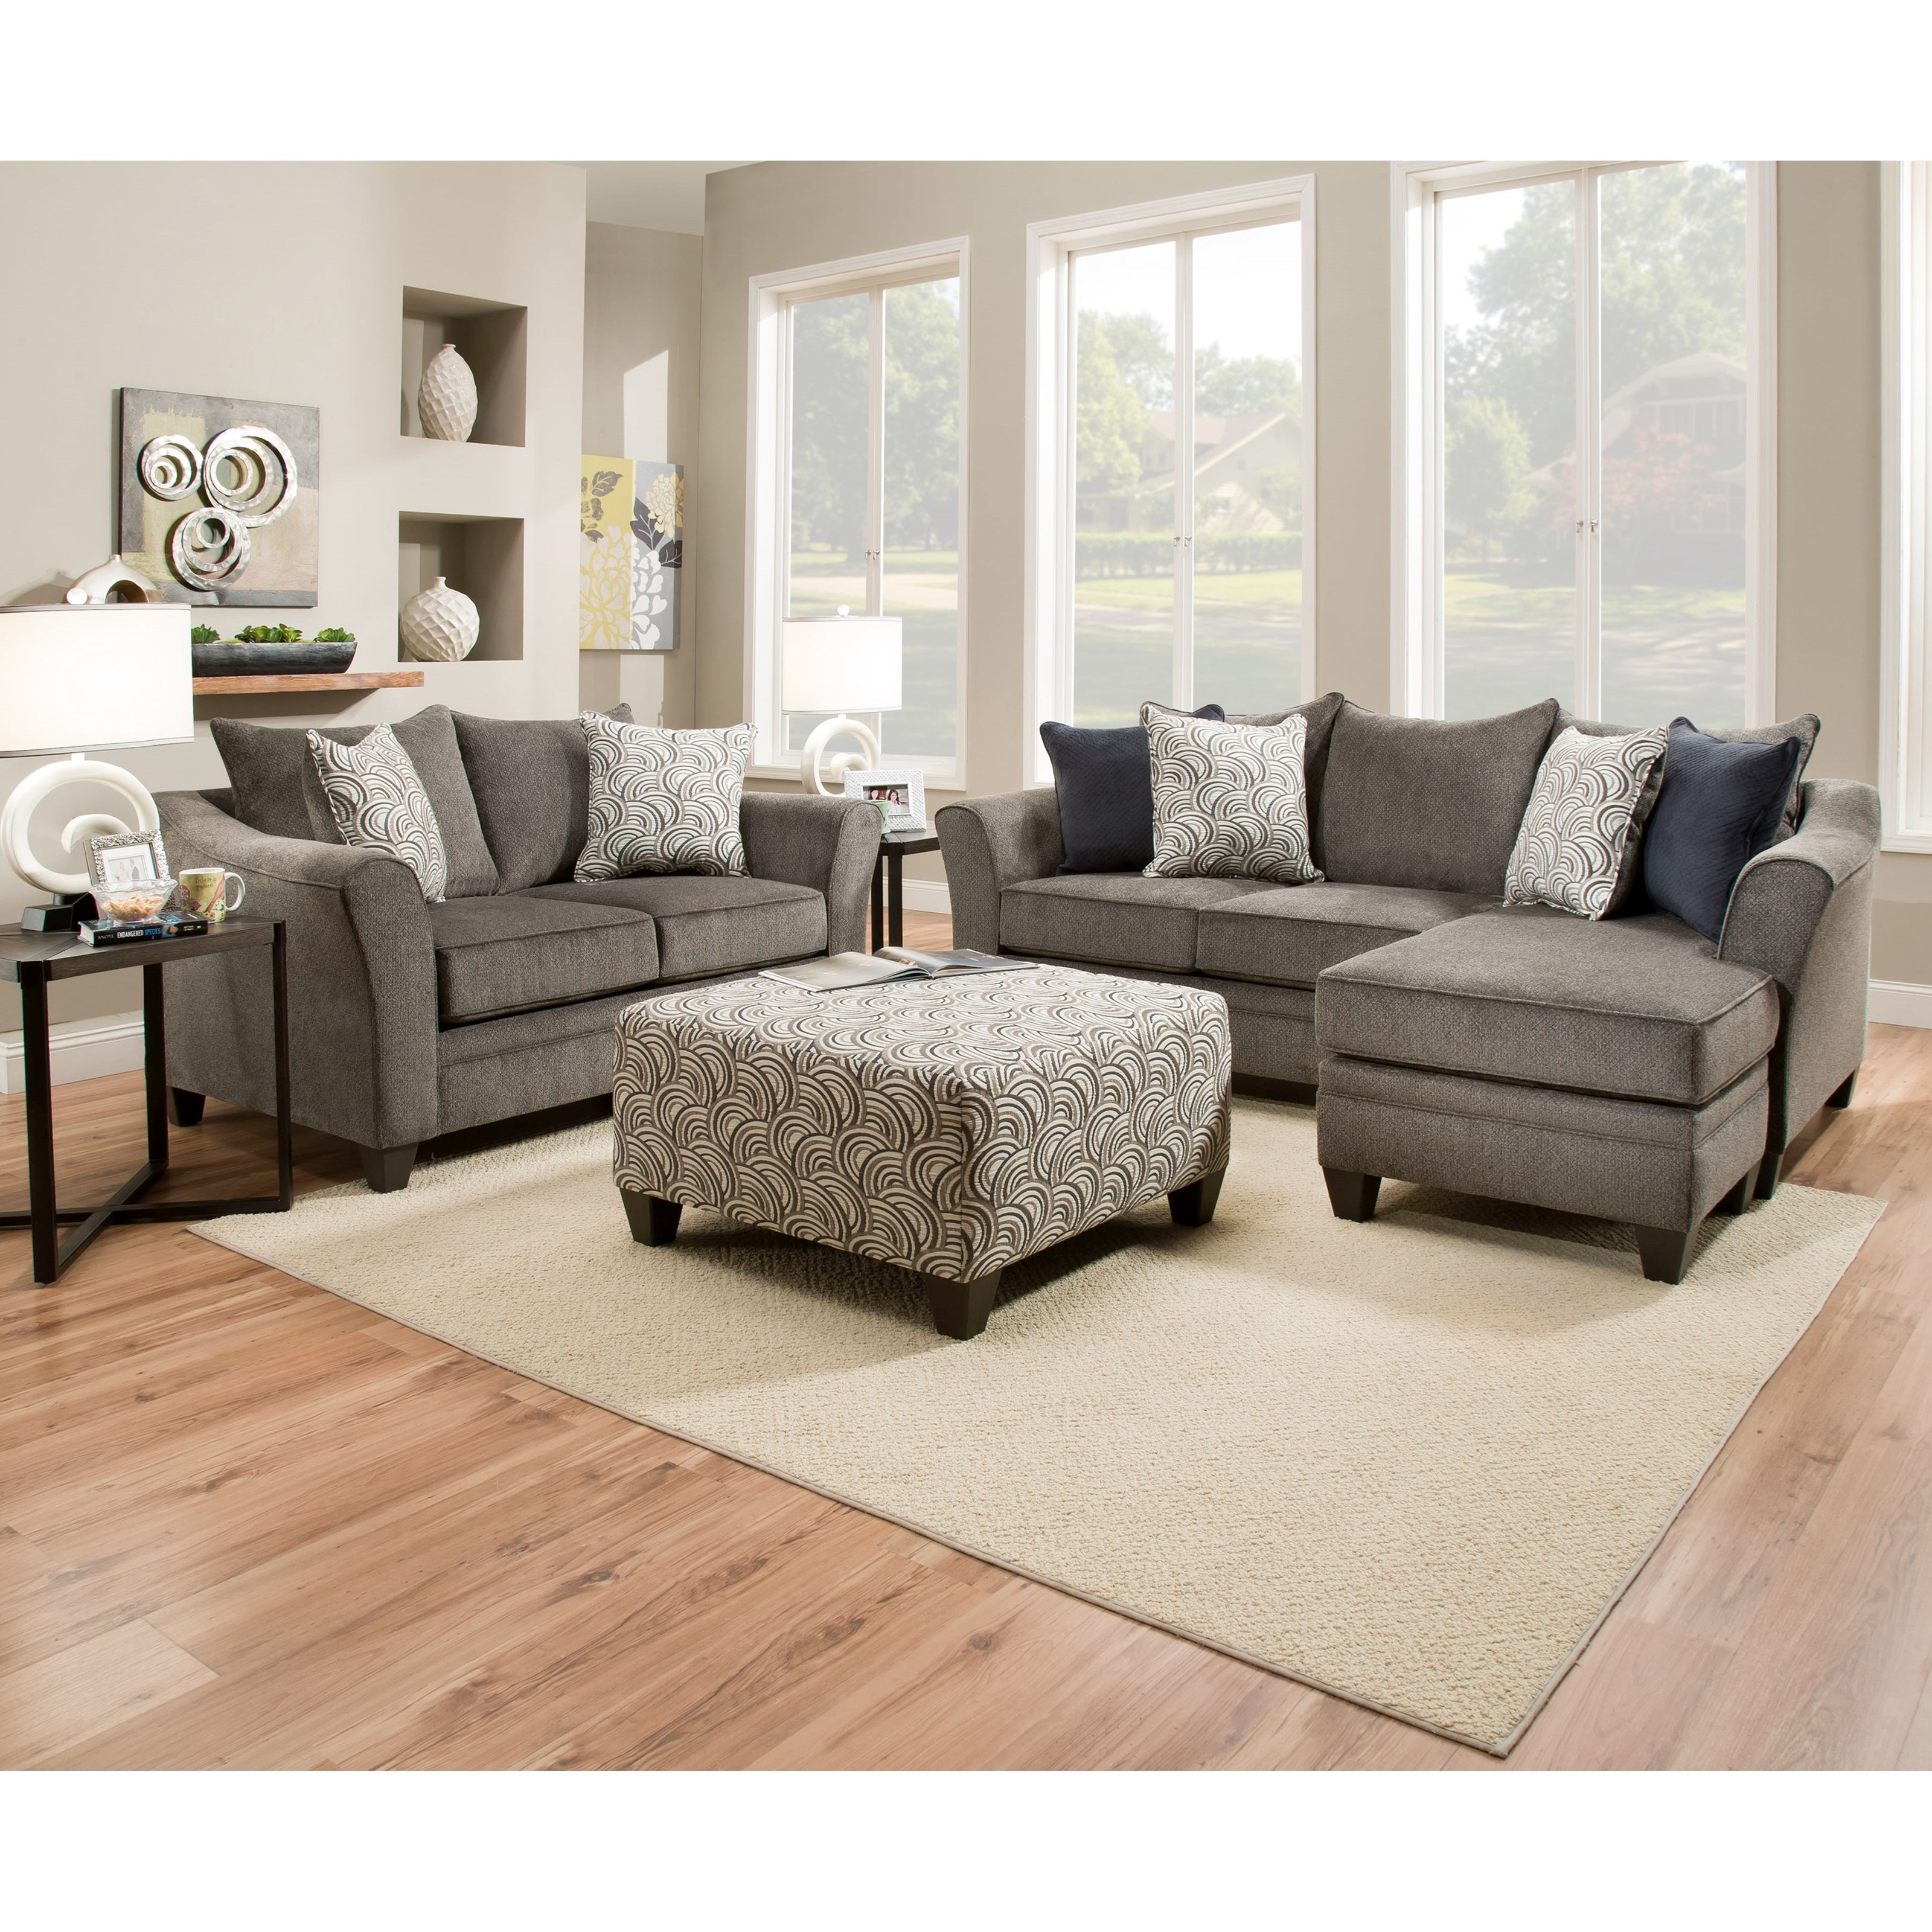 Roomstore Furniture: United Furniture Industries 6485 Transitional Loveseat